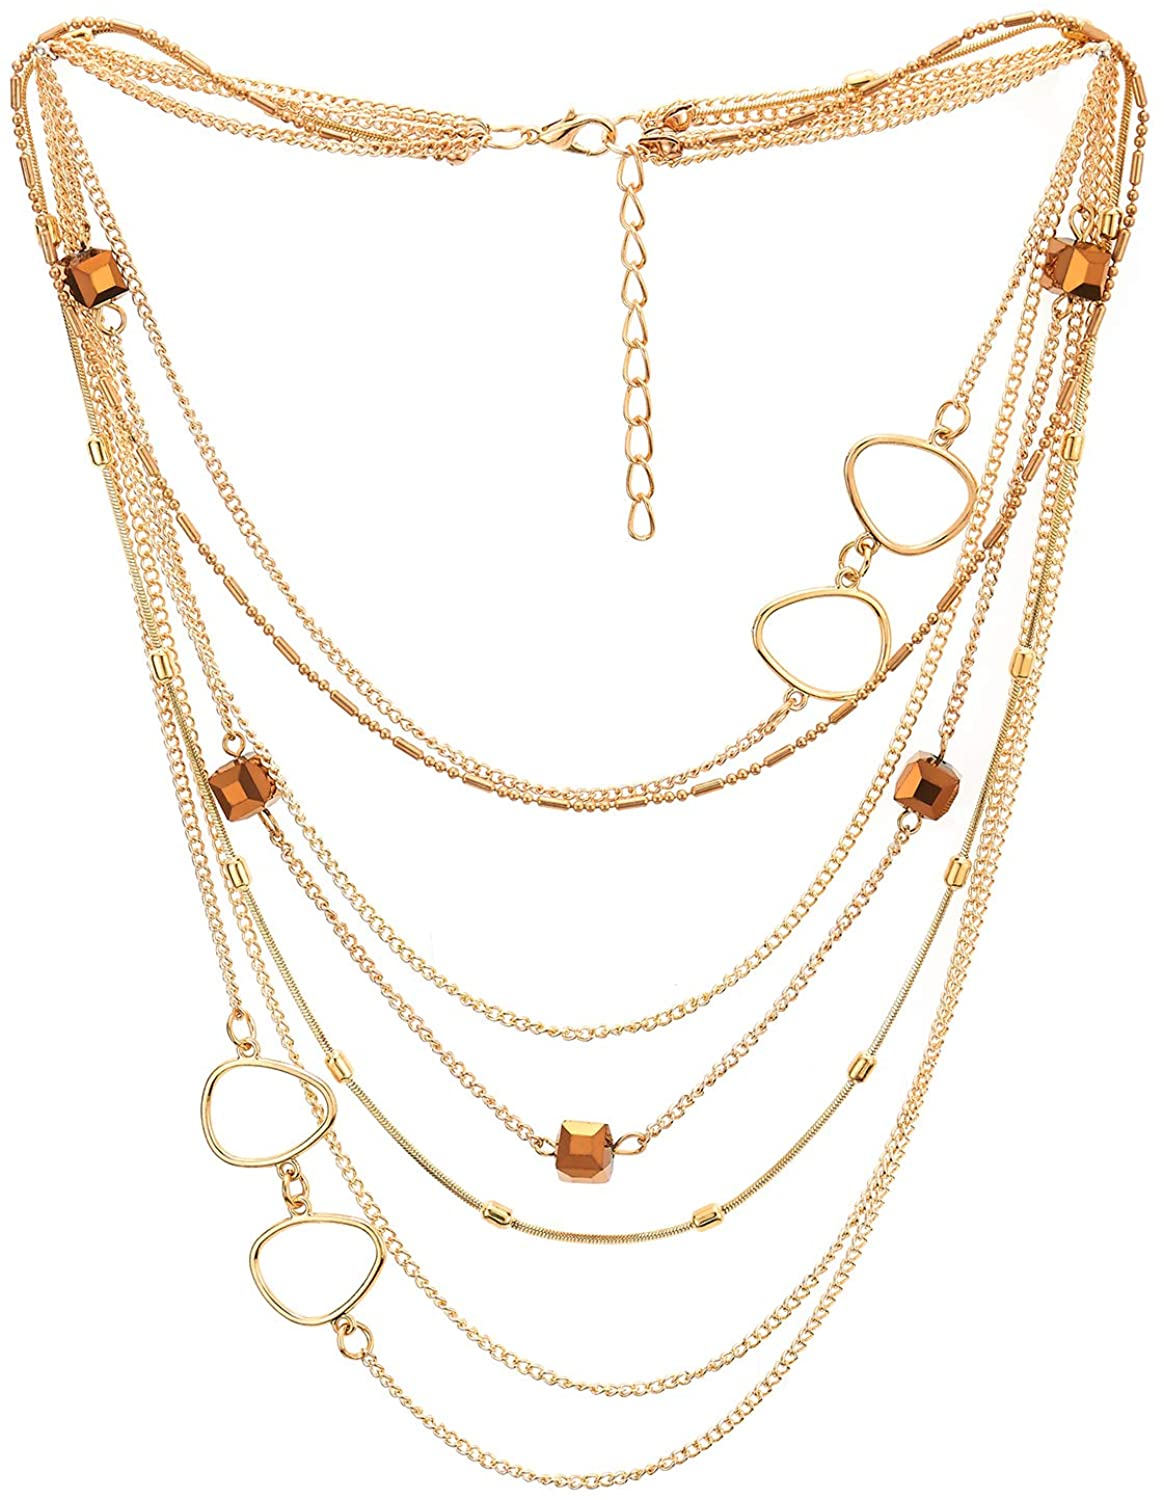 COOLSTEELANDBEYOND Gold Statement Necklace Waterfall Multi-Strand Chain with Cube Crystal Bead and Circle Charm, Dress